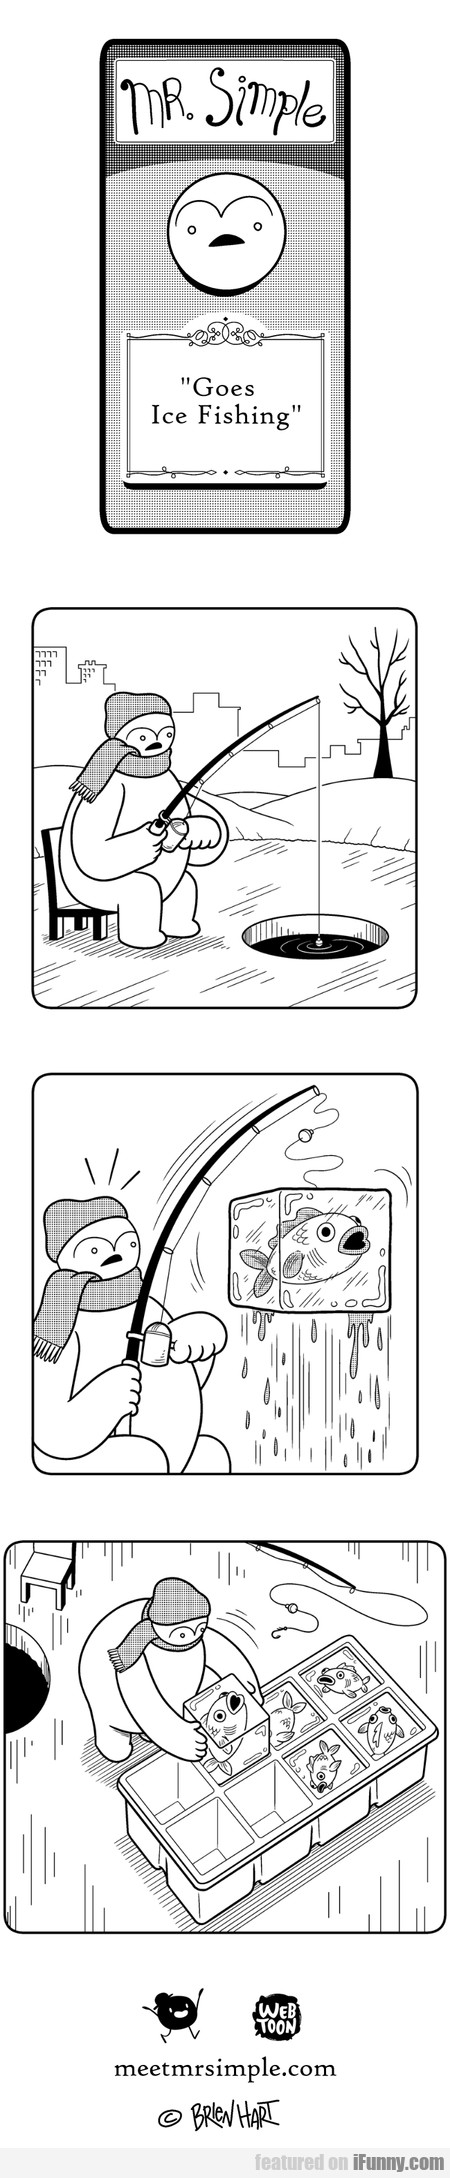 Mr. Simple Goes Ice Fishing